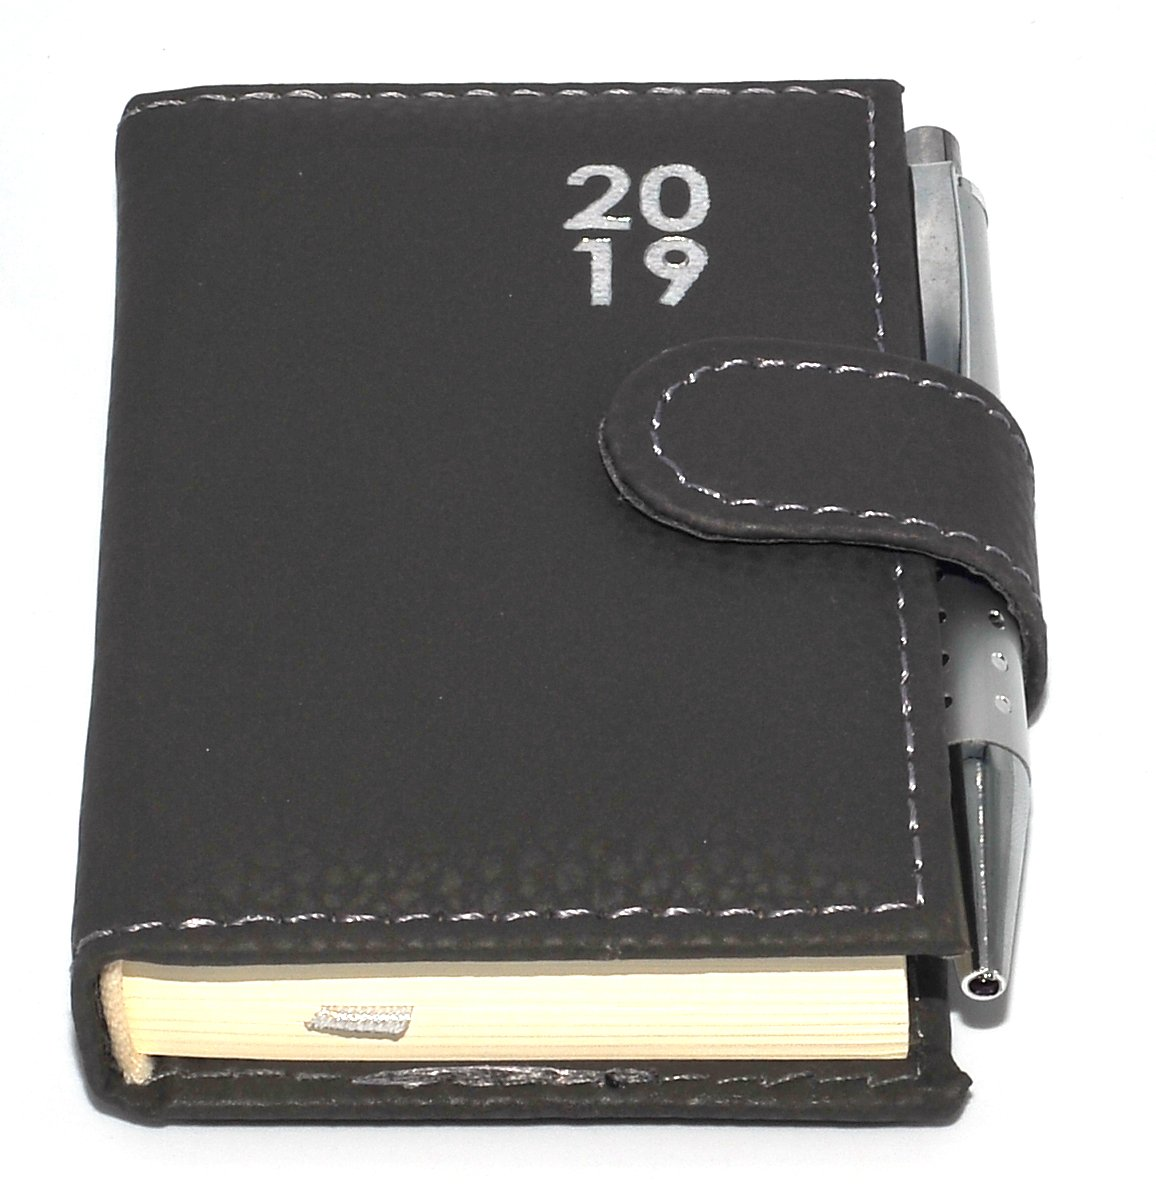 1x 2019 Pocket Diary Day a Page View Leatherette Pen Design at Random icompact